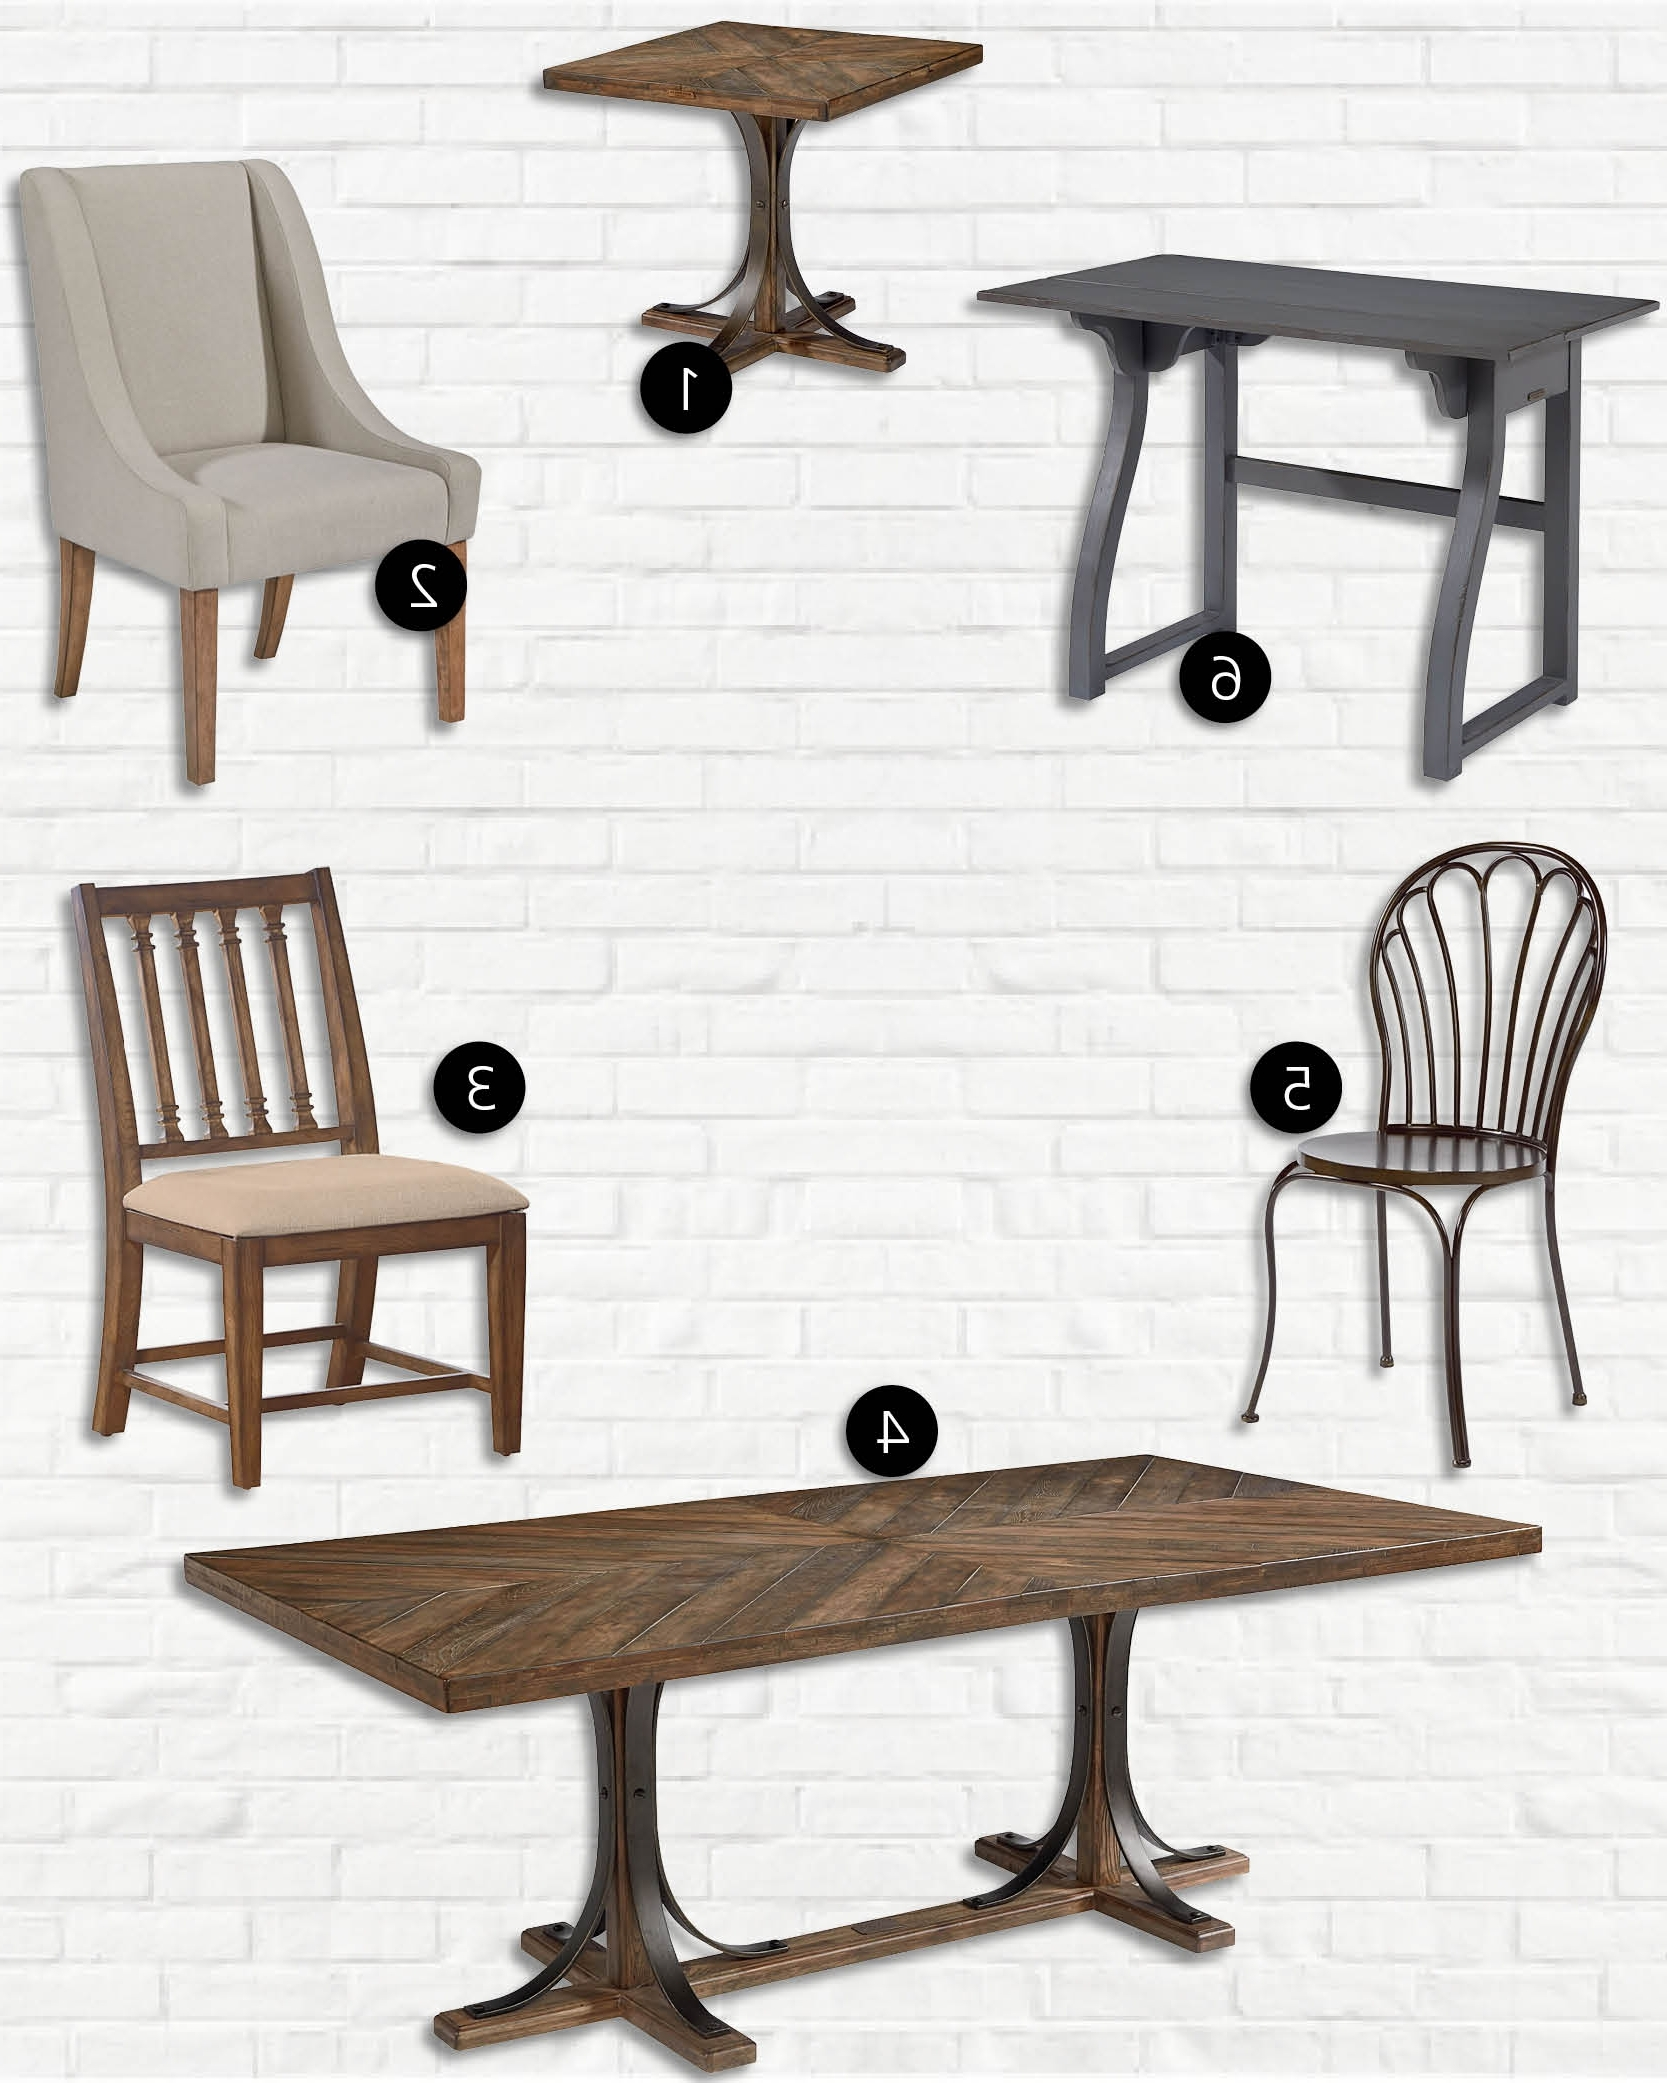 Magnolia Home Shop Floor Dining Tables With Iron Trestle Within 2018 Celebrity Look For Less: Magnolia Homejoanna Gaines (View 12 of 25)